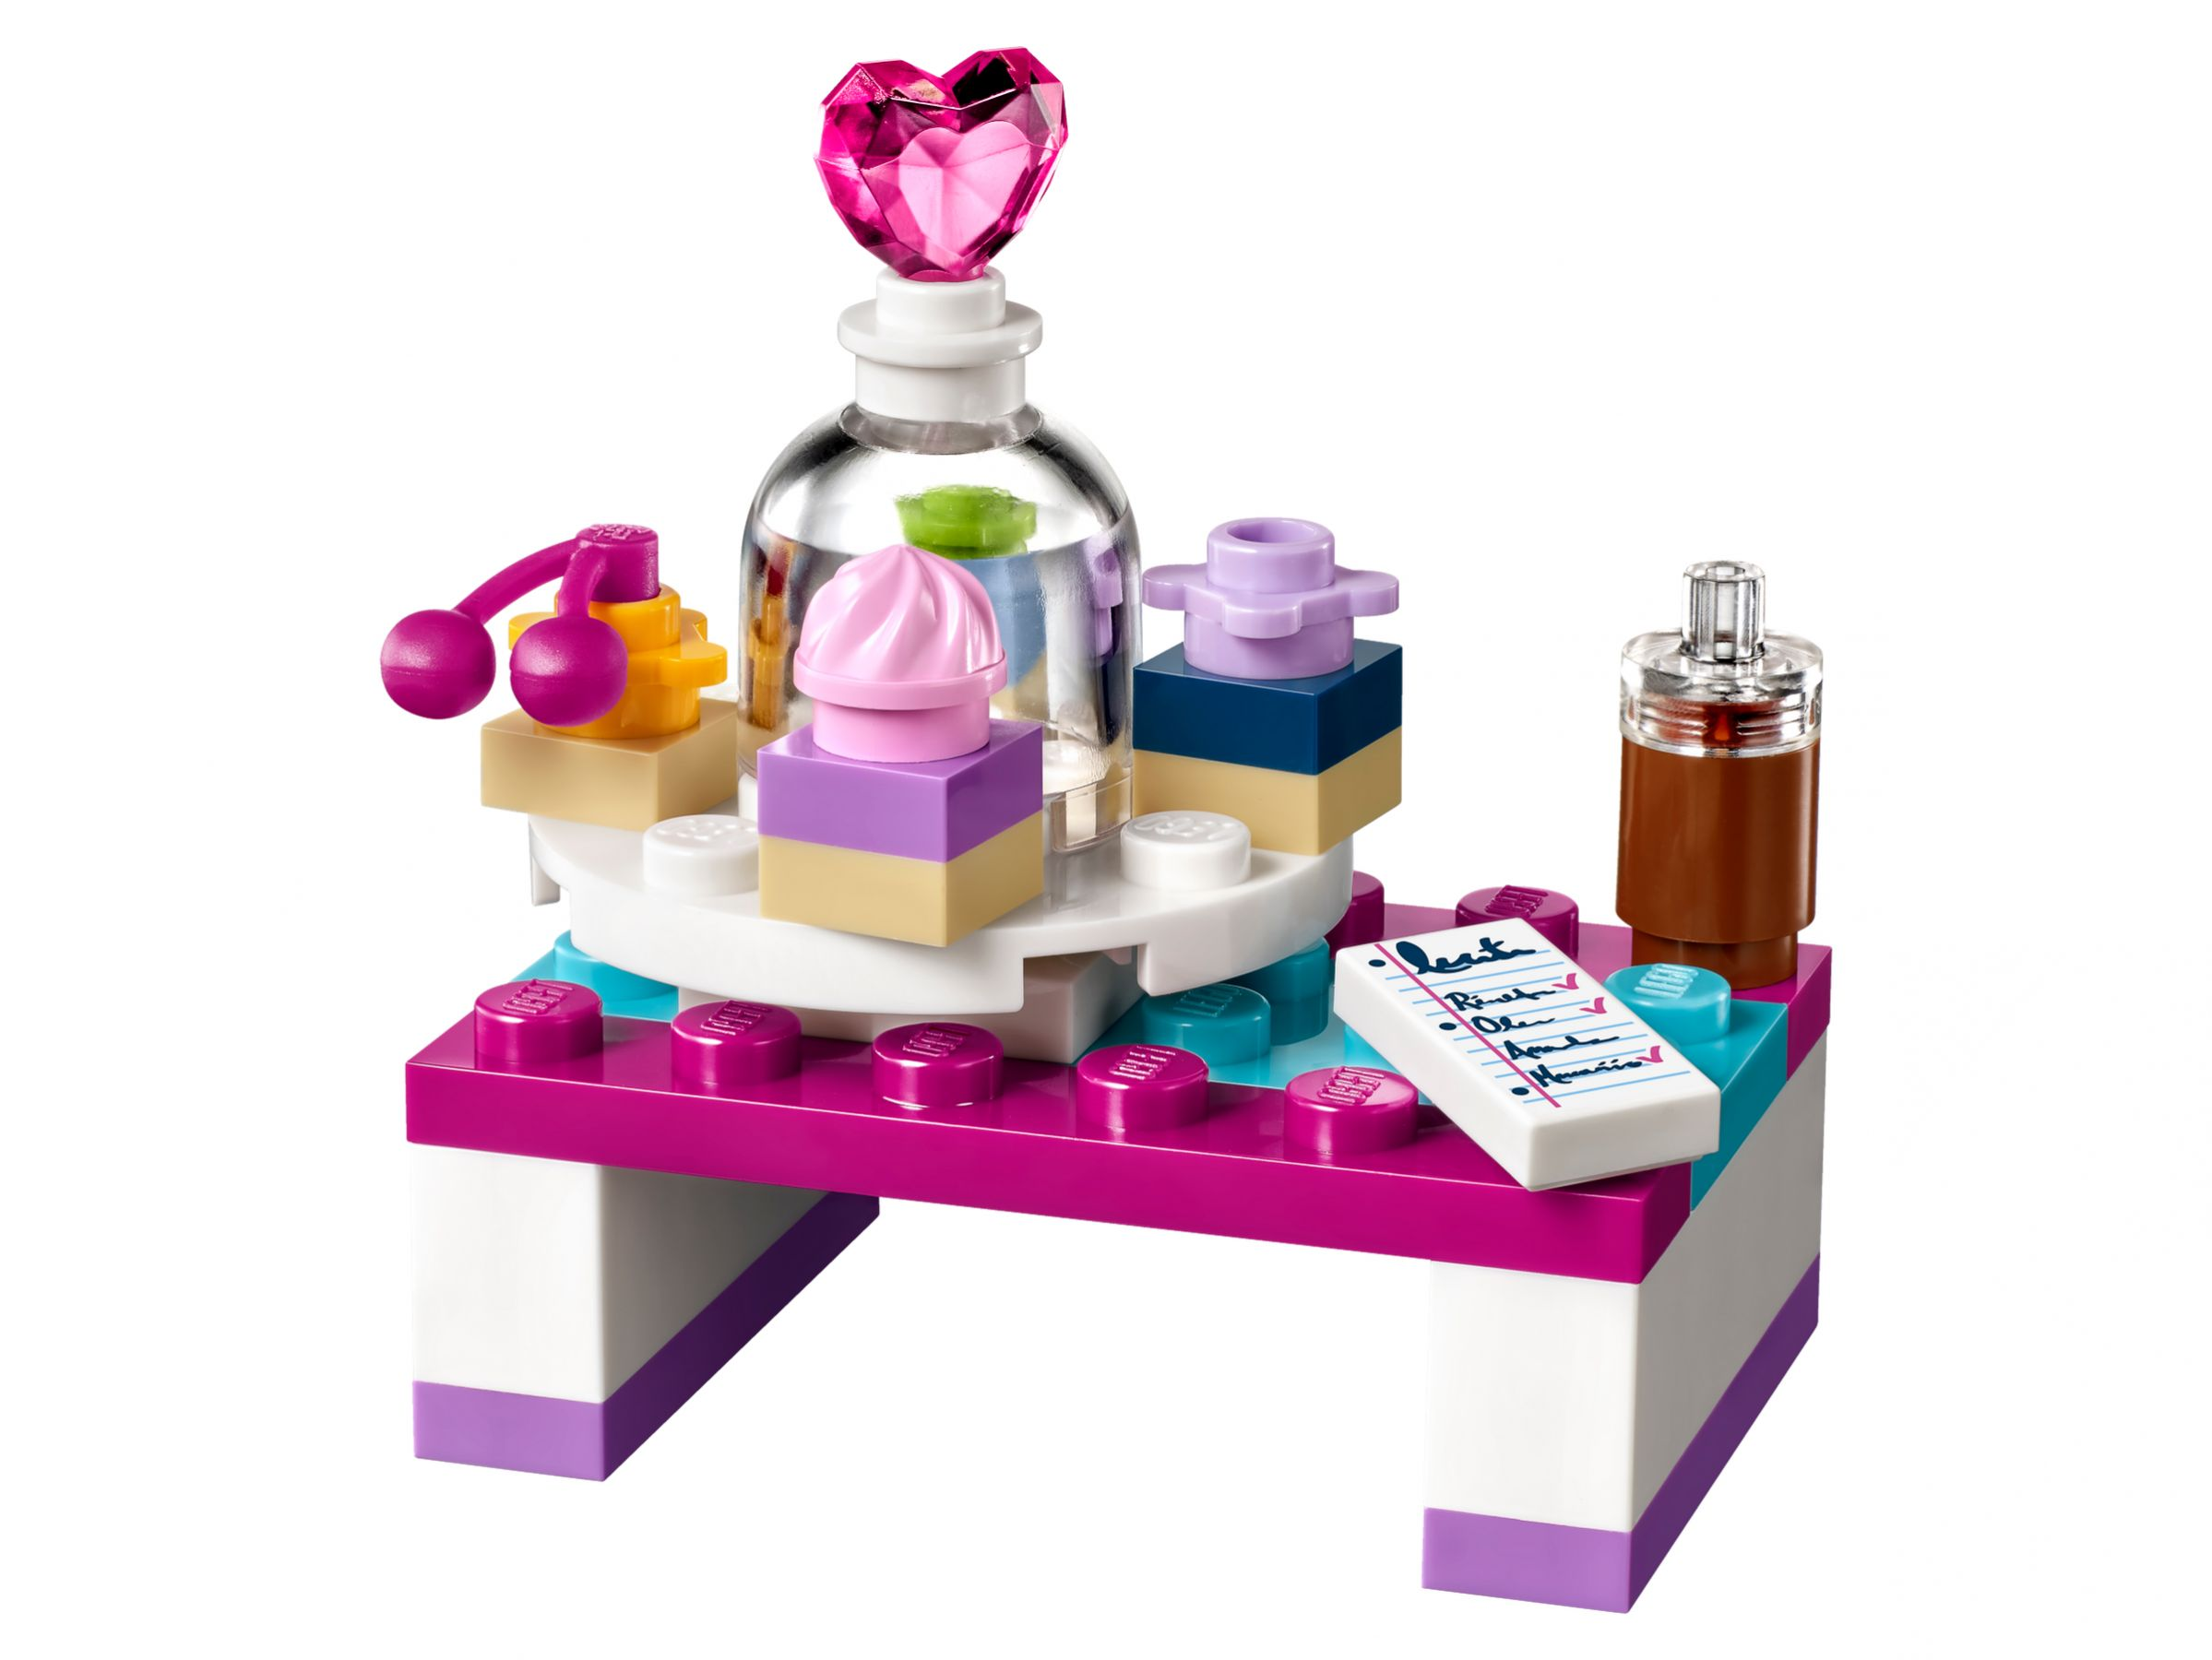 LEGO Friends 41308 Stephanies Backstube LEGO_41308_alt3.jpg